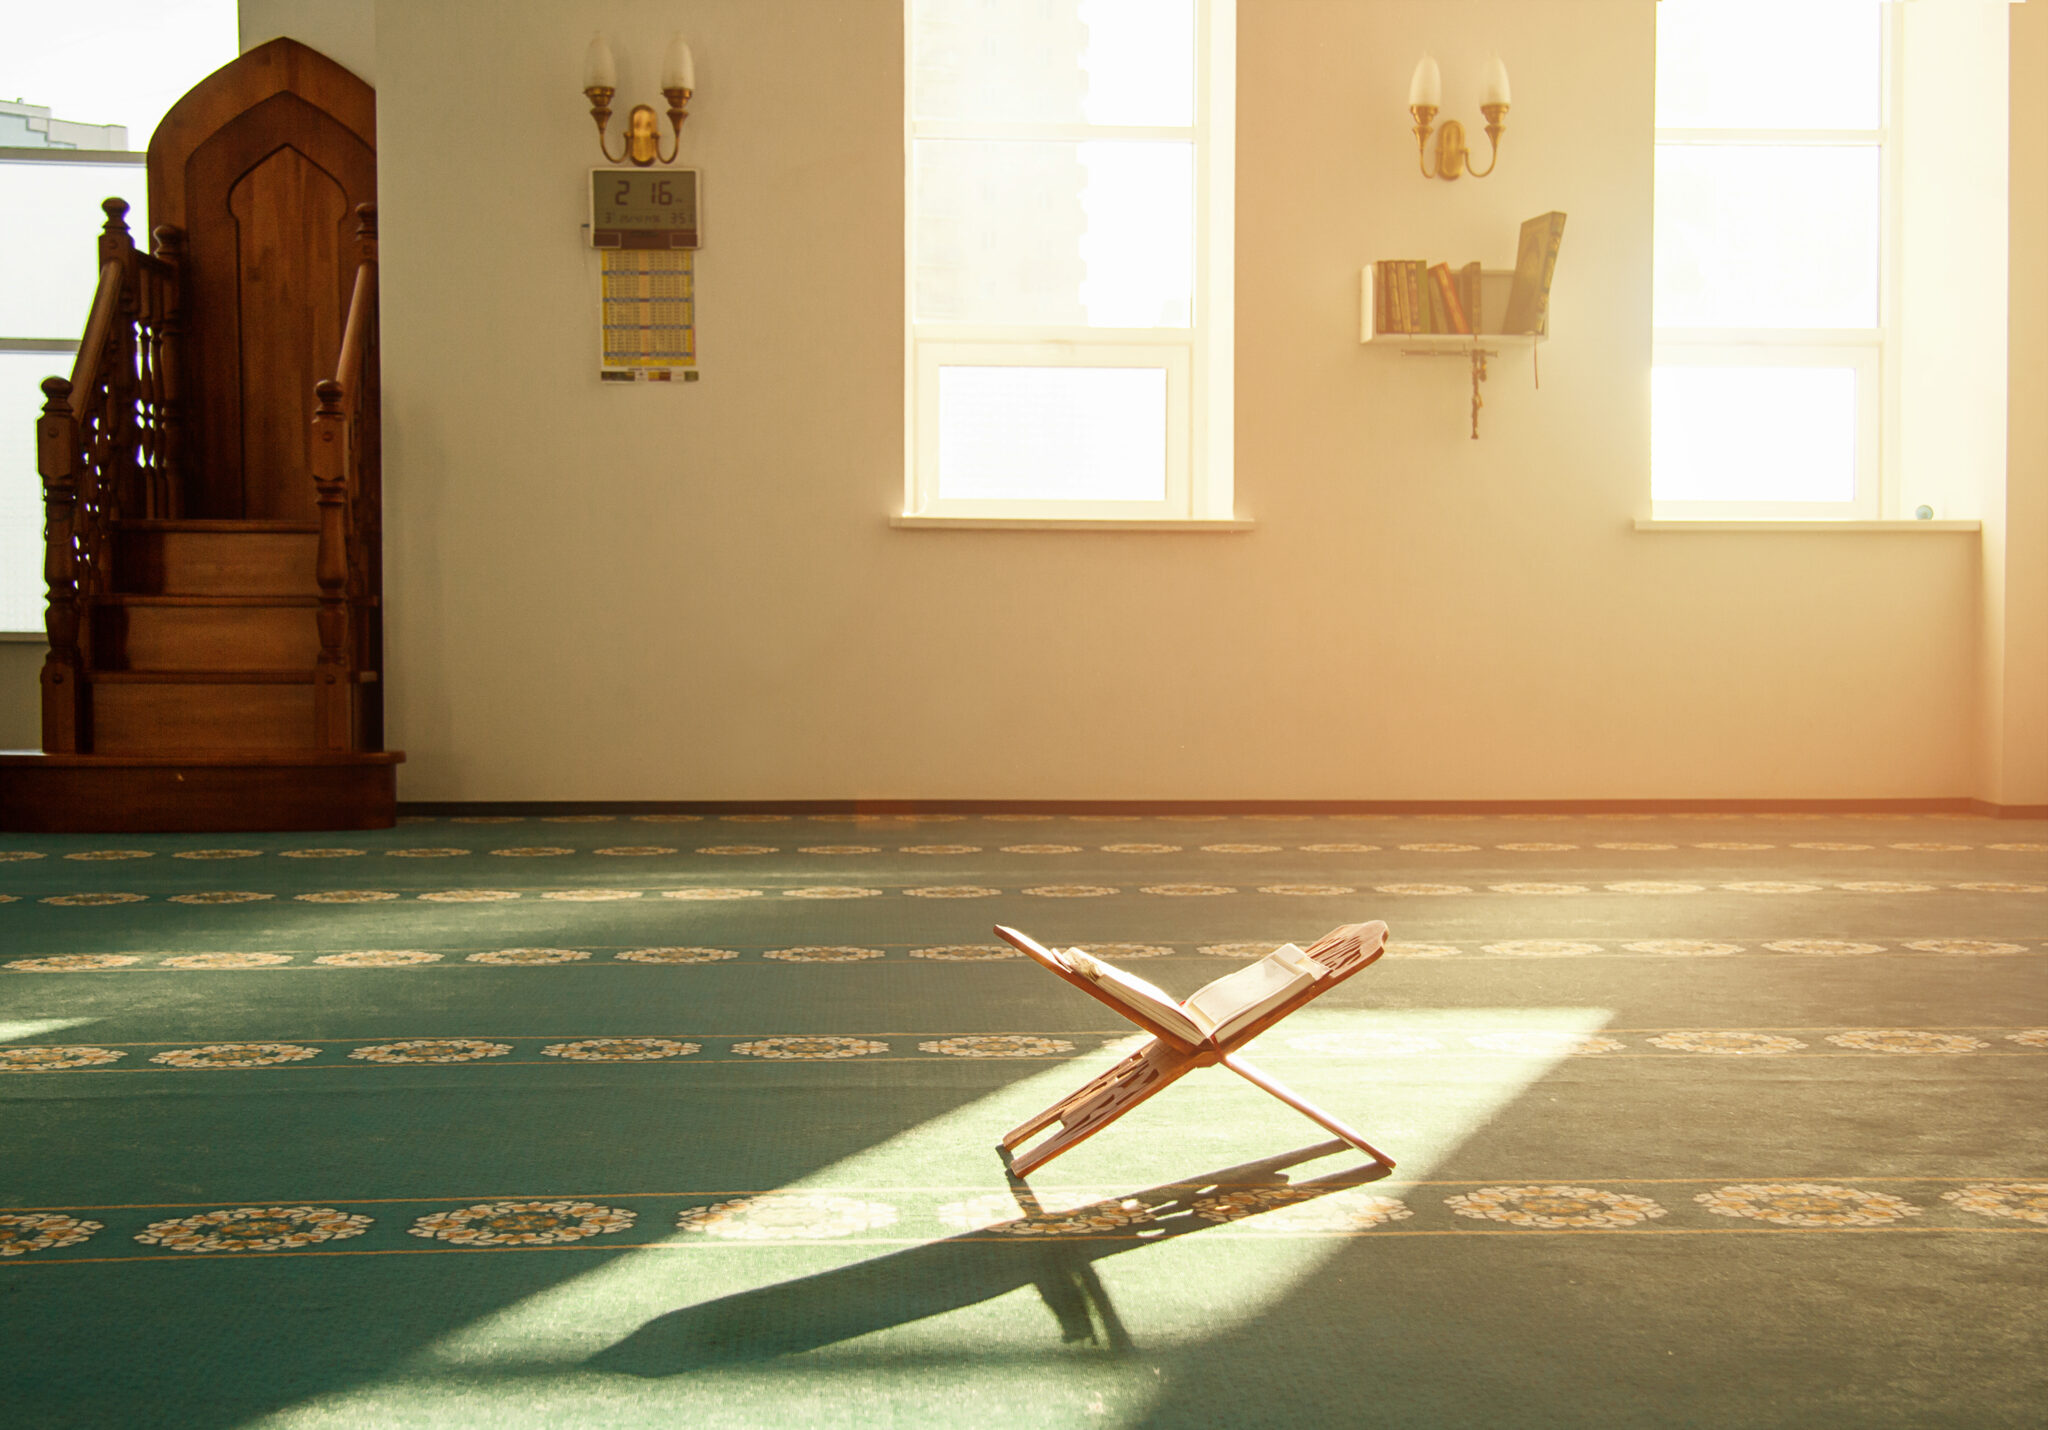 Increase in number of mosques in US